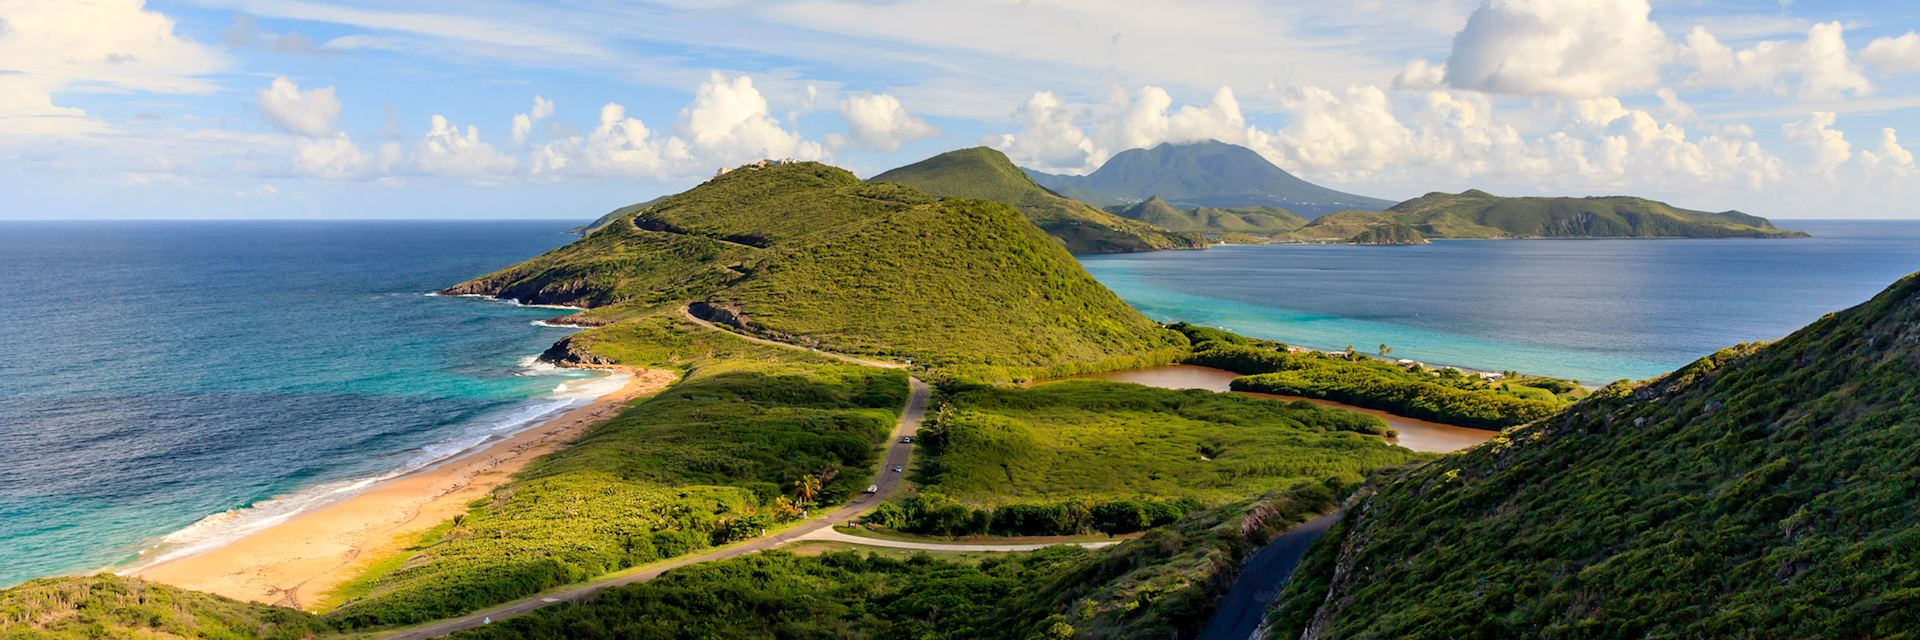 Saint Kitts southeast peninsula